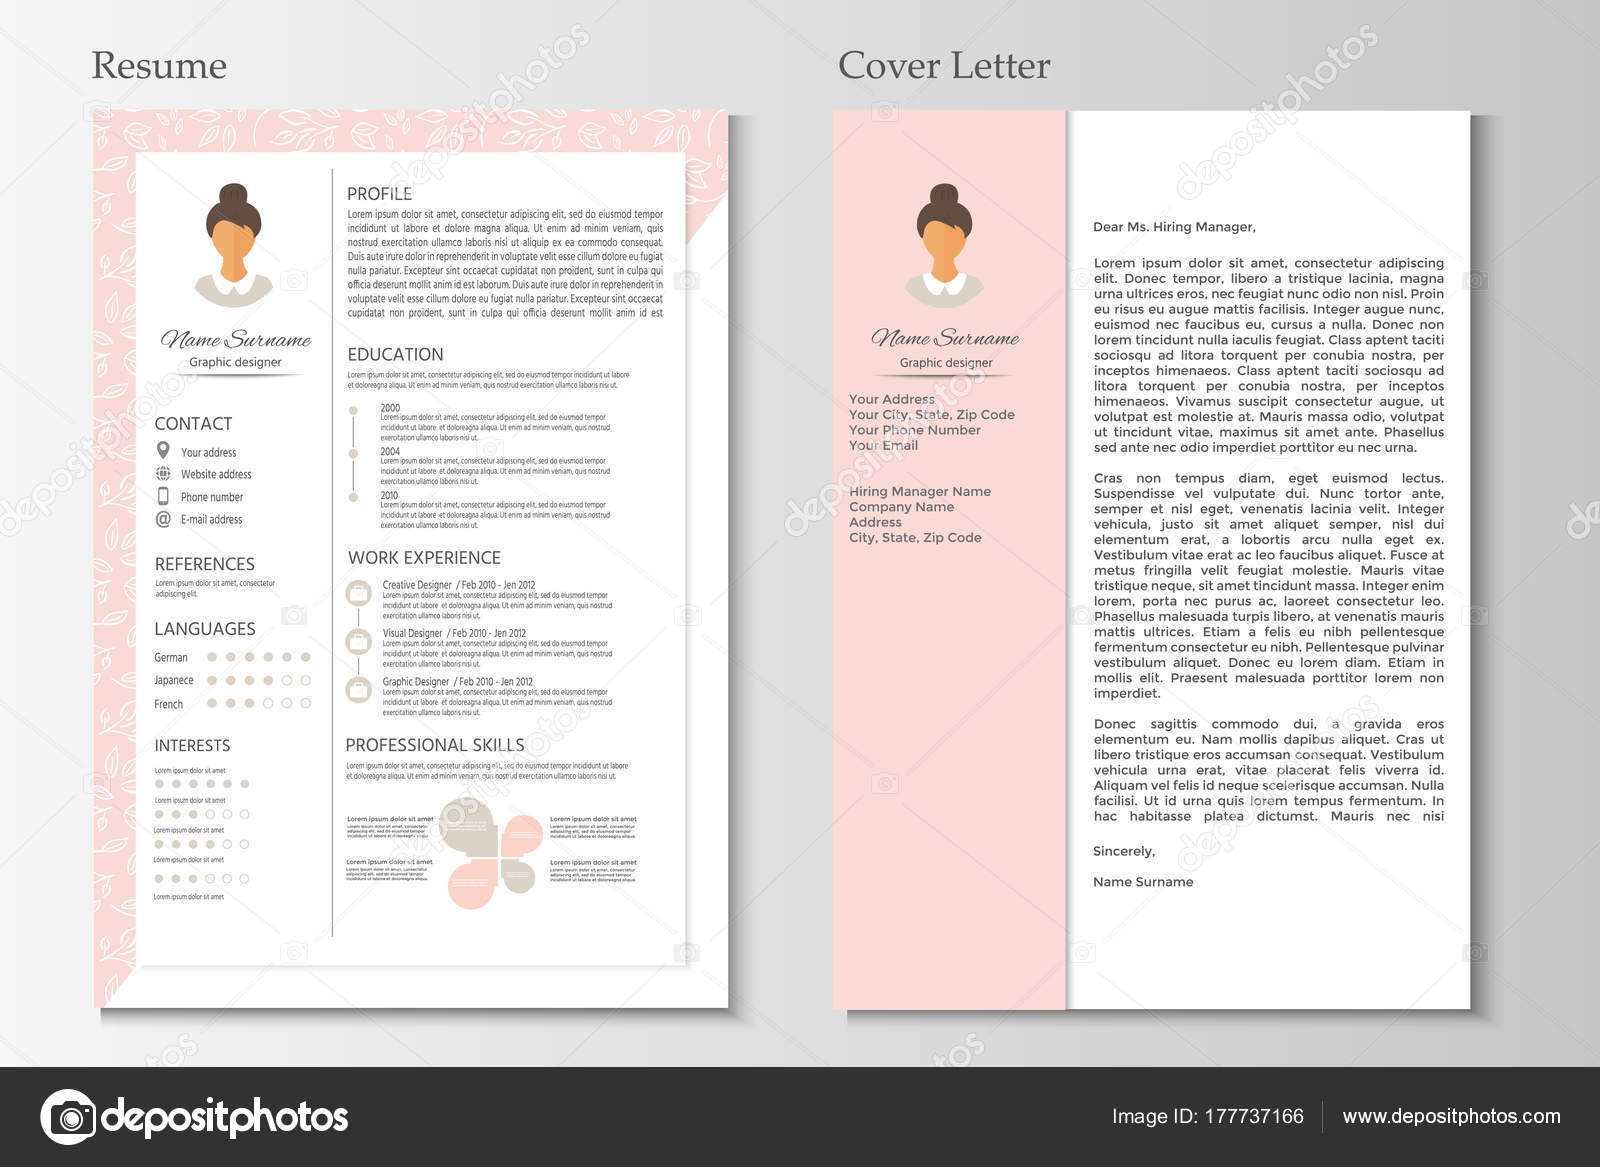 Female Resume Cover Letter Infographic Design Stylish Set